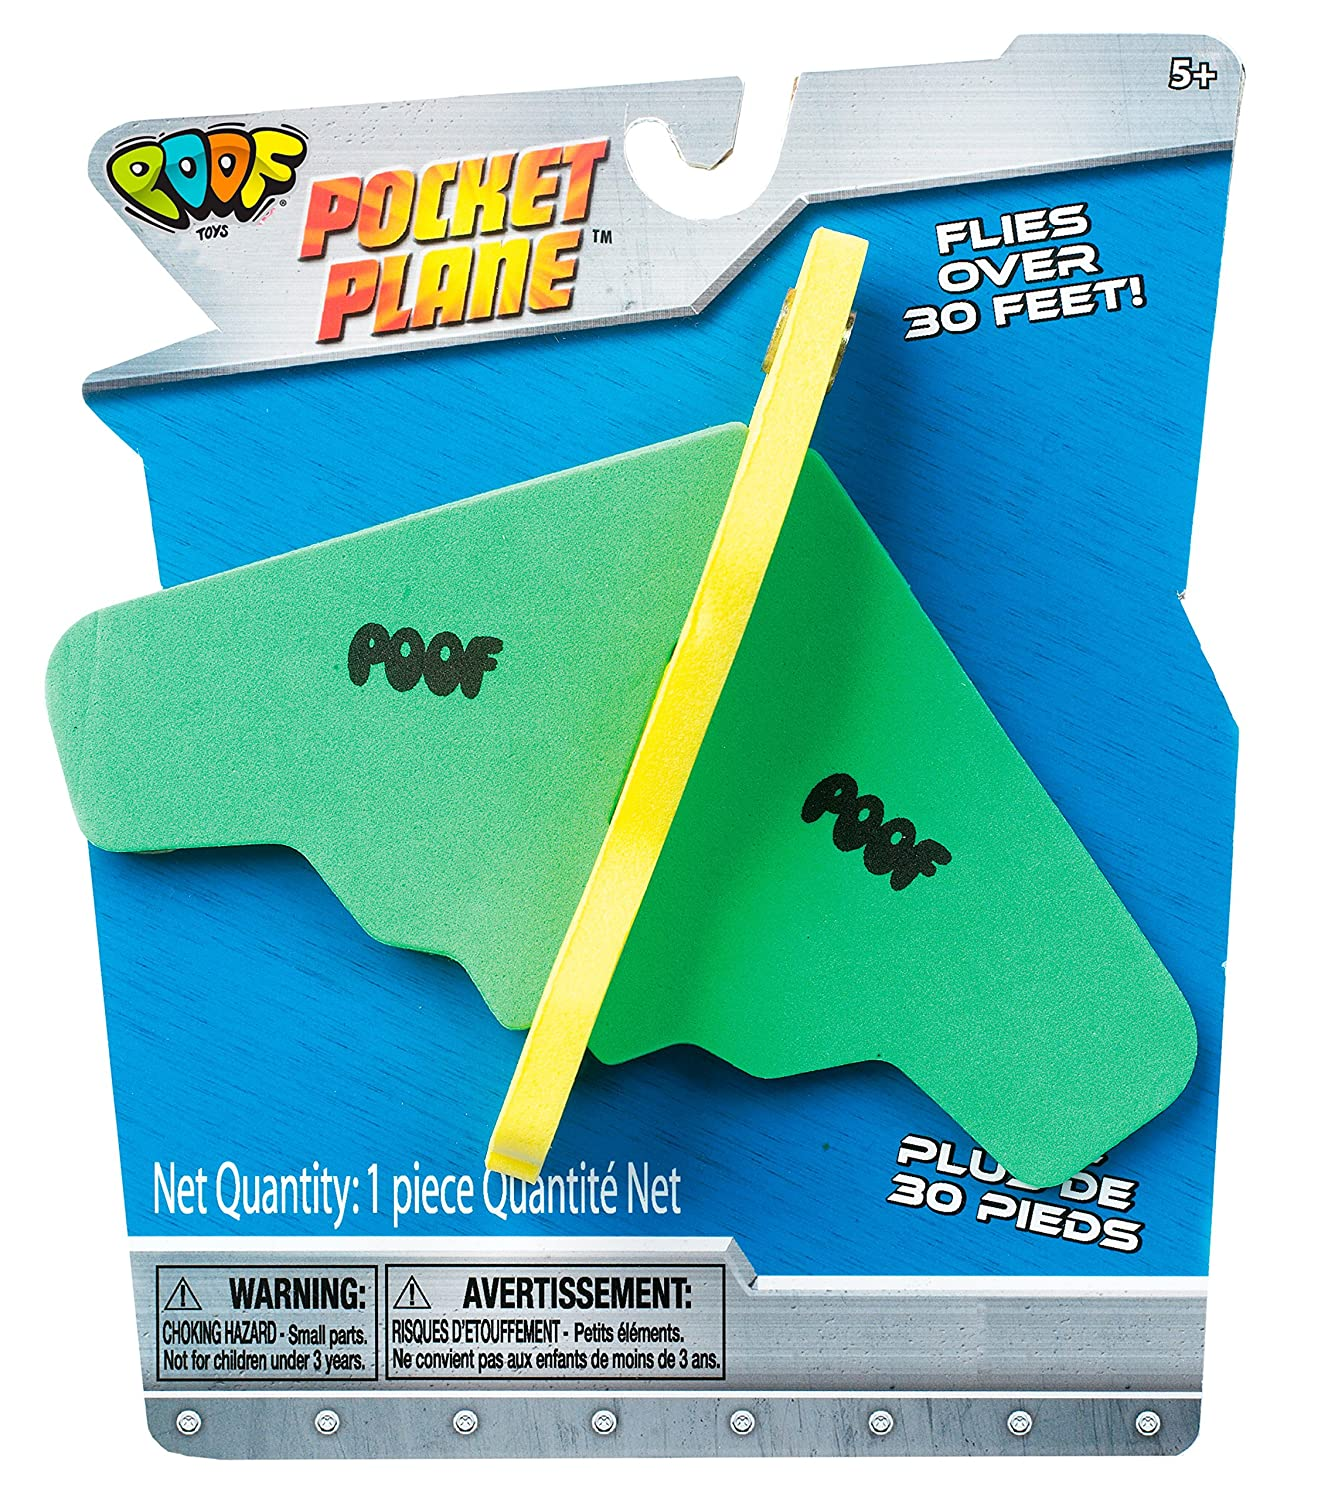 Amazon.com: POOF Flying Pocket Plane: Toys & Games